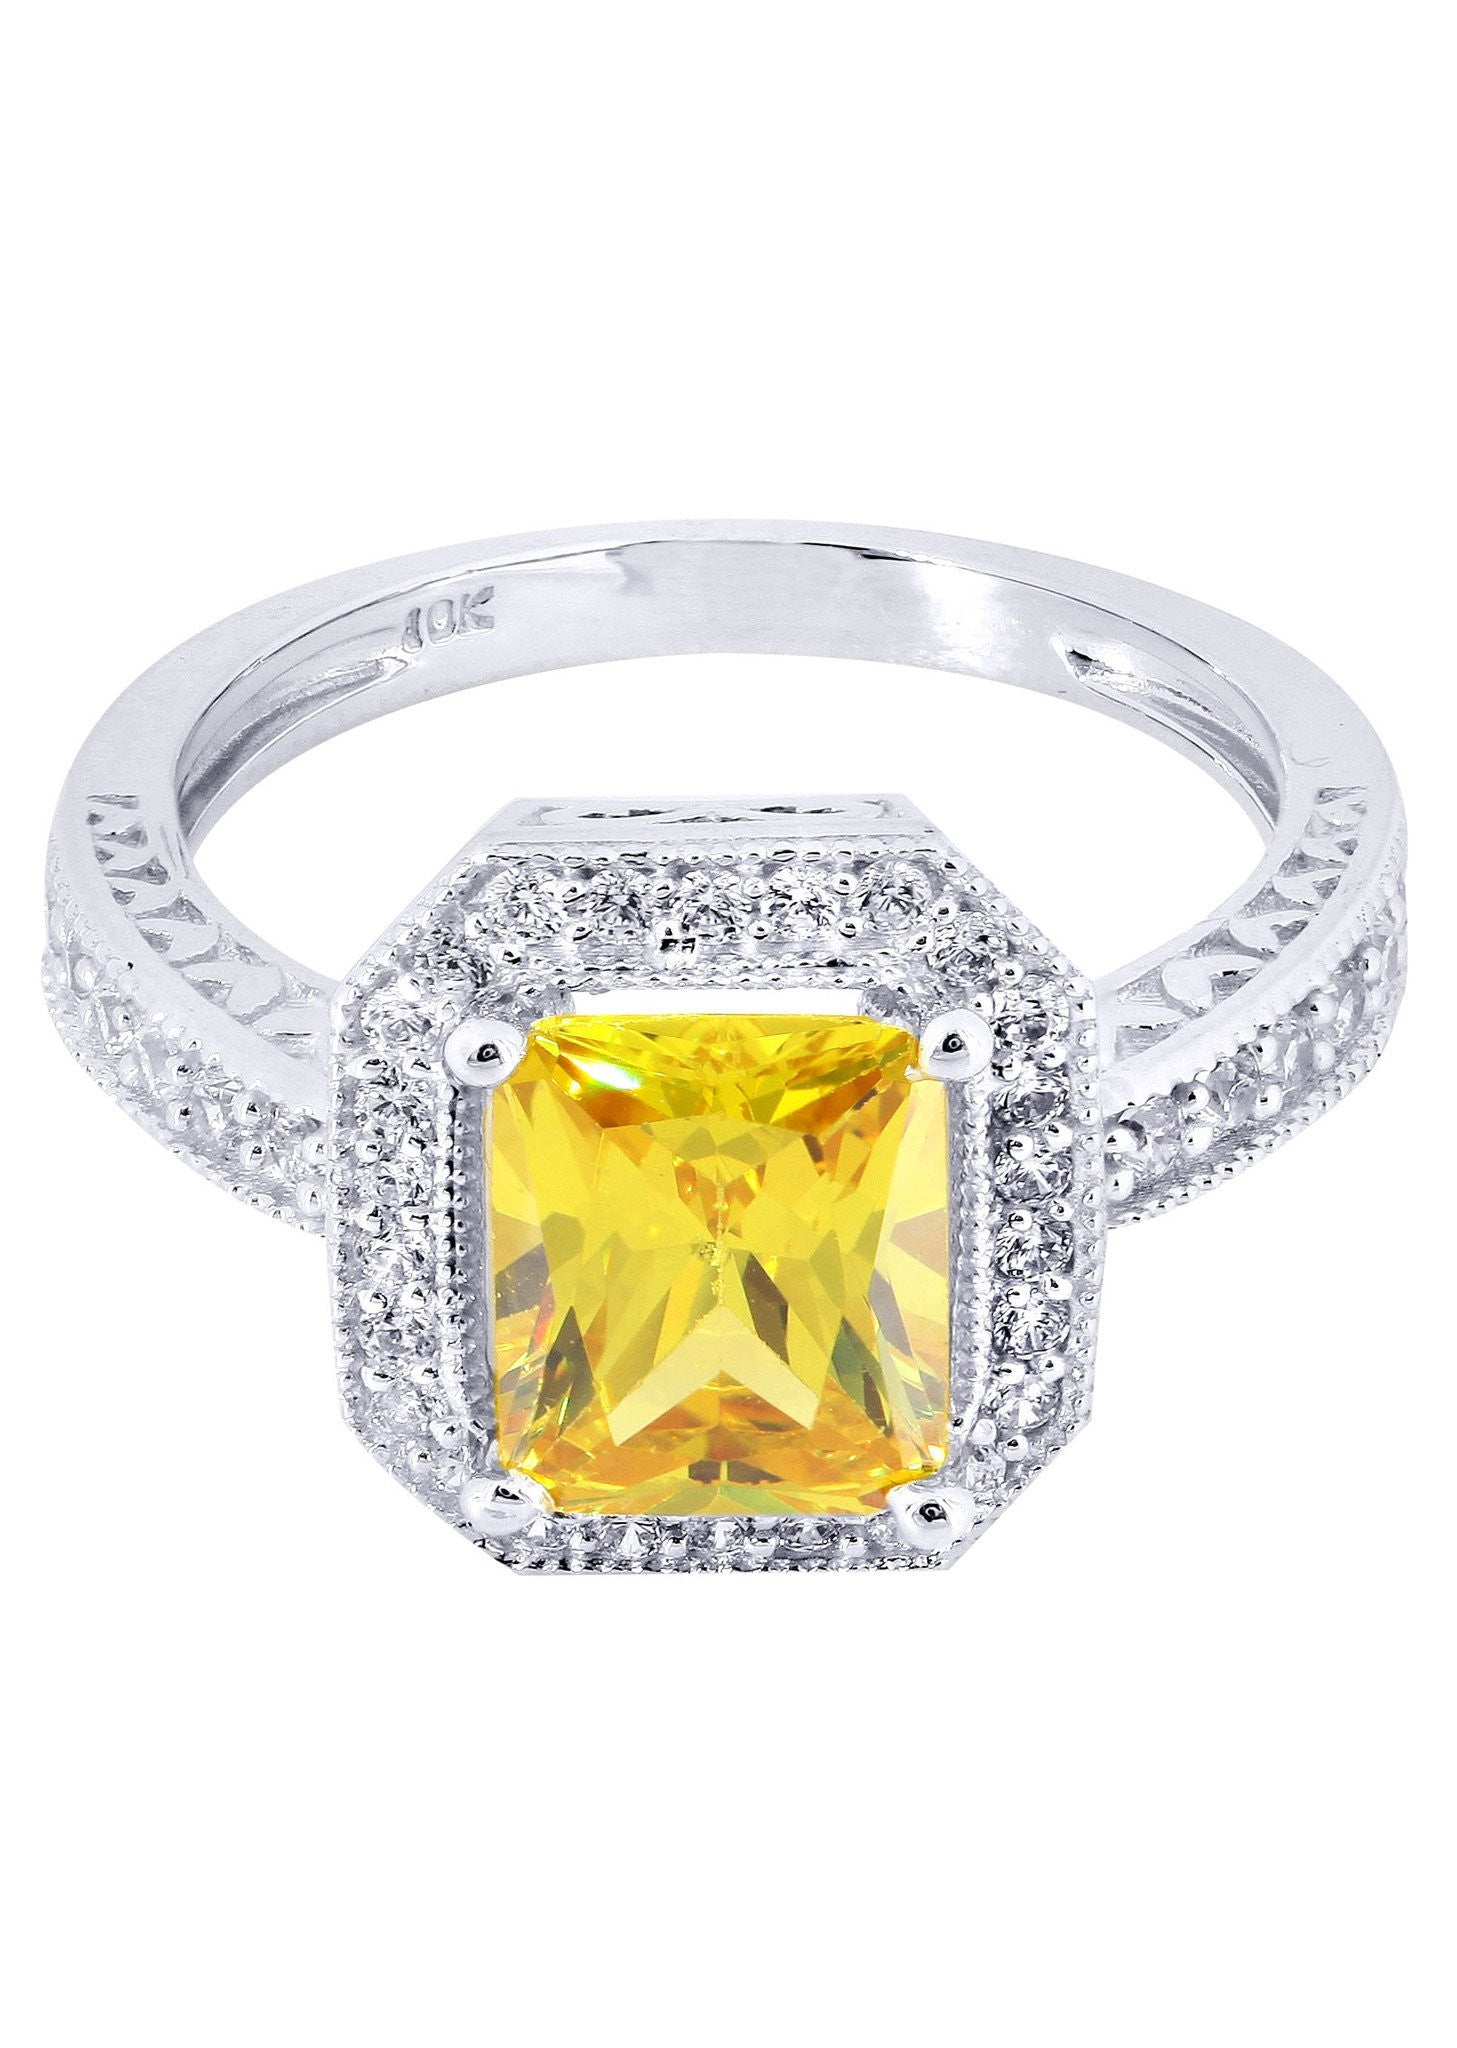 citrine promise ring 10k gold 4 2 grams frostnyc